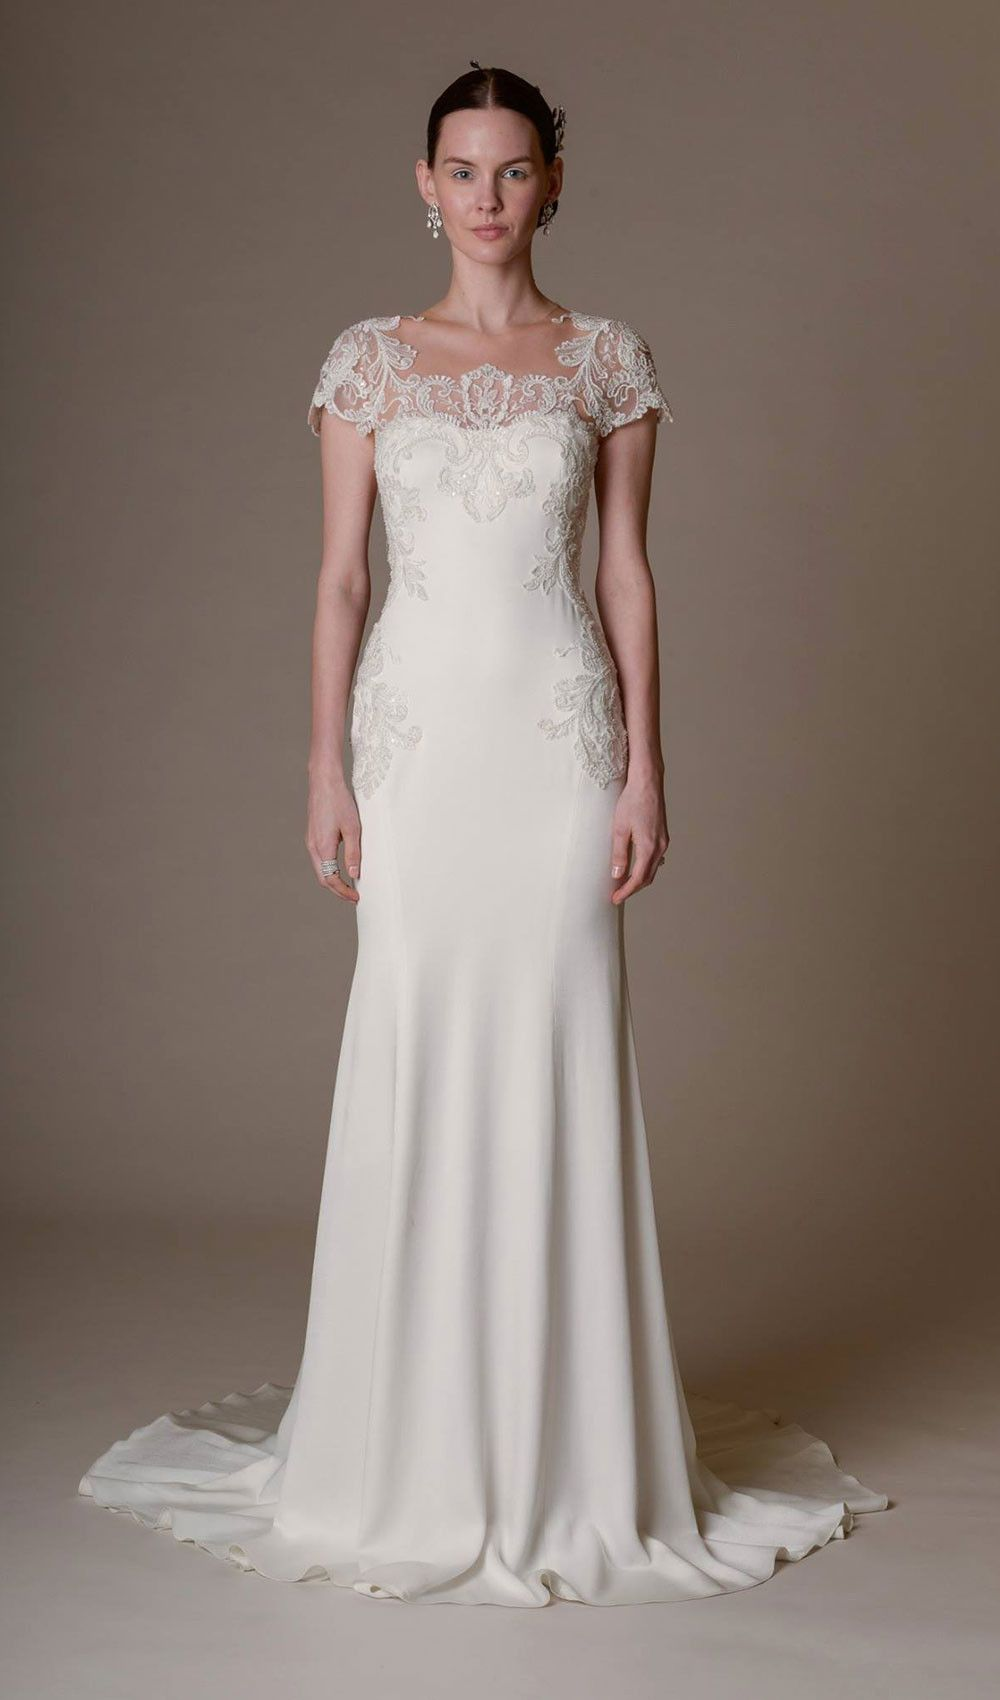 Try This Silk Crepe Mermaid Wedding Dress With Key Hole Back And Embroidered Thread Work Applique From Marchesa At Schaffers In Scottsdale Arizona